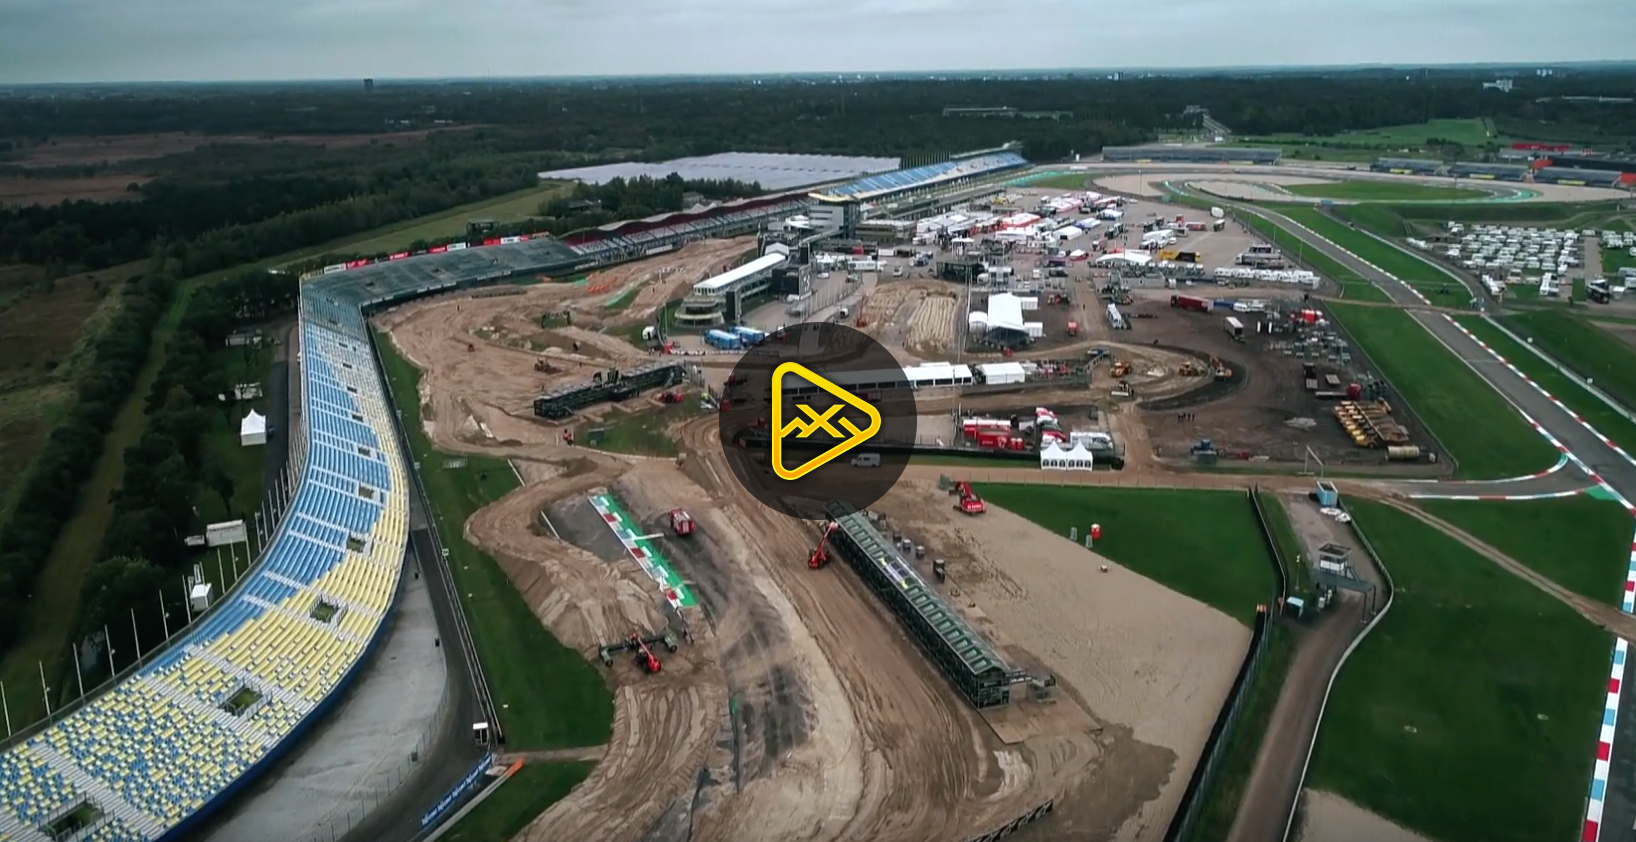 Preview: Welcome to 2019 MXoN at Assen